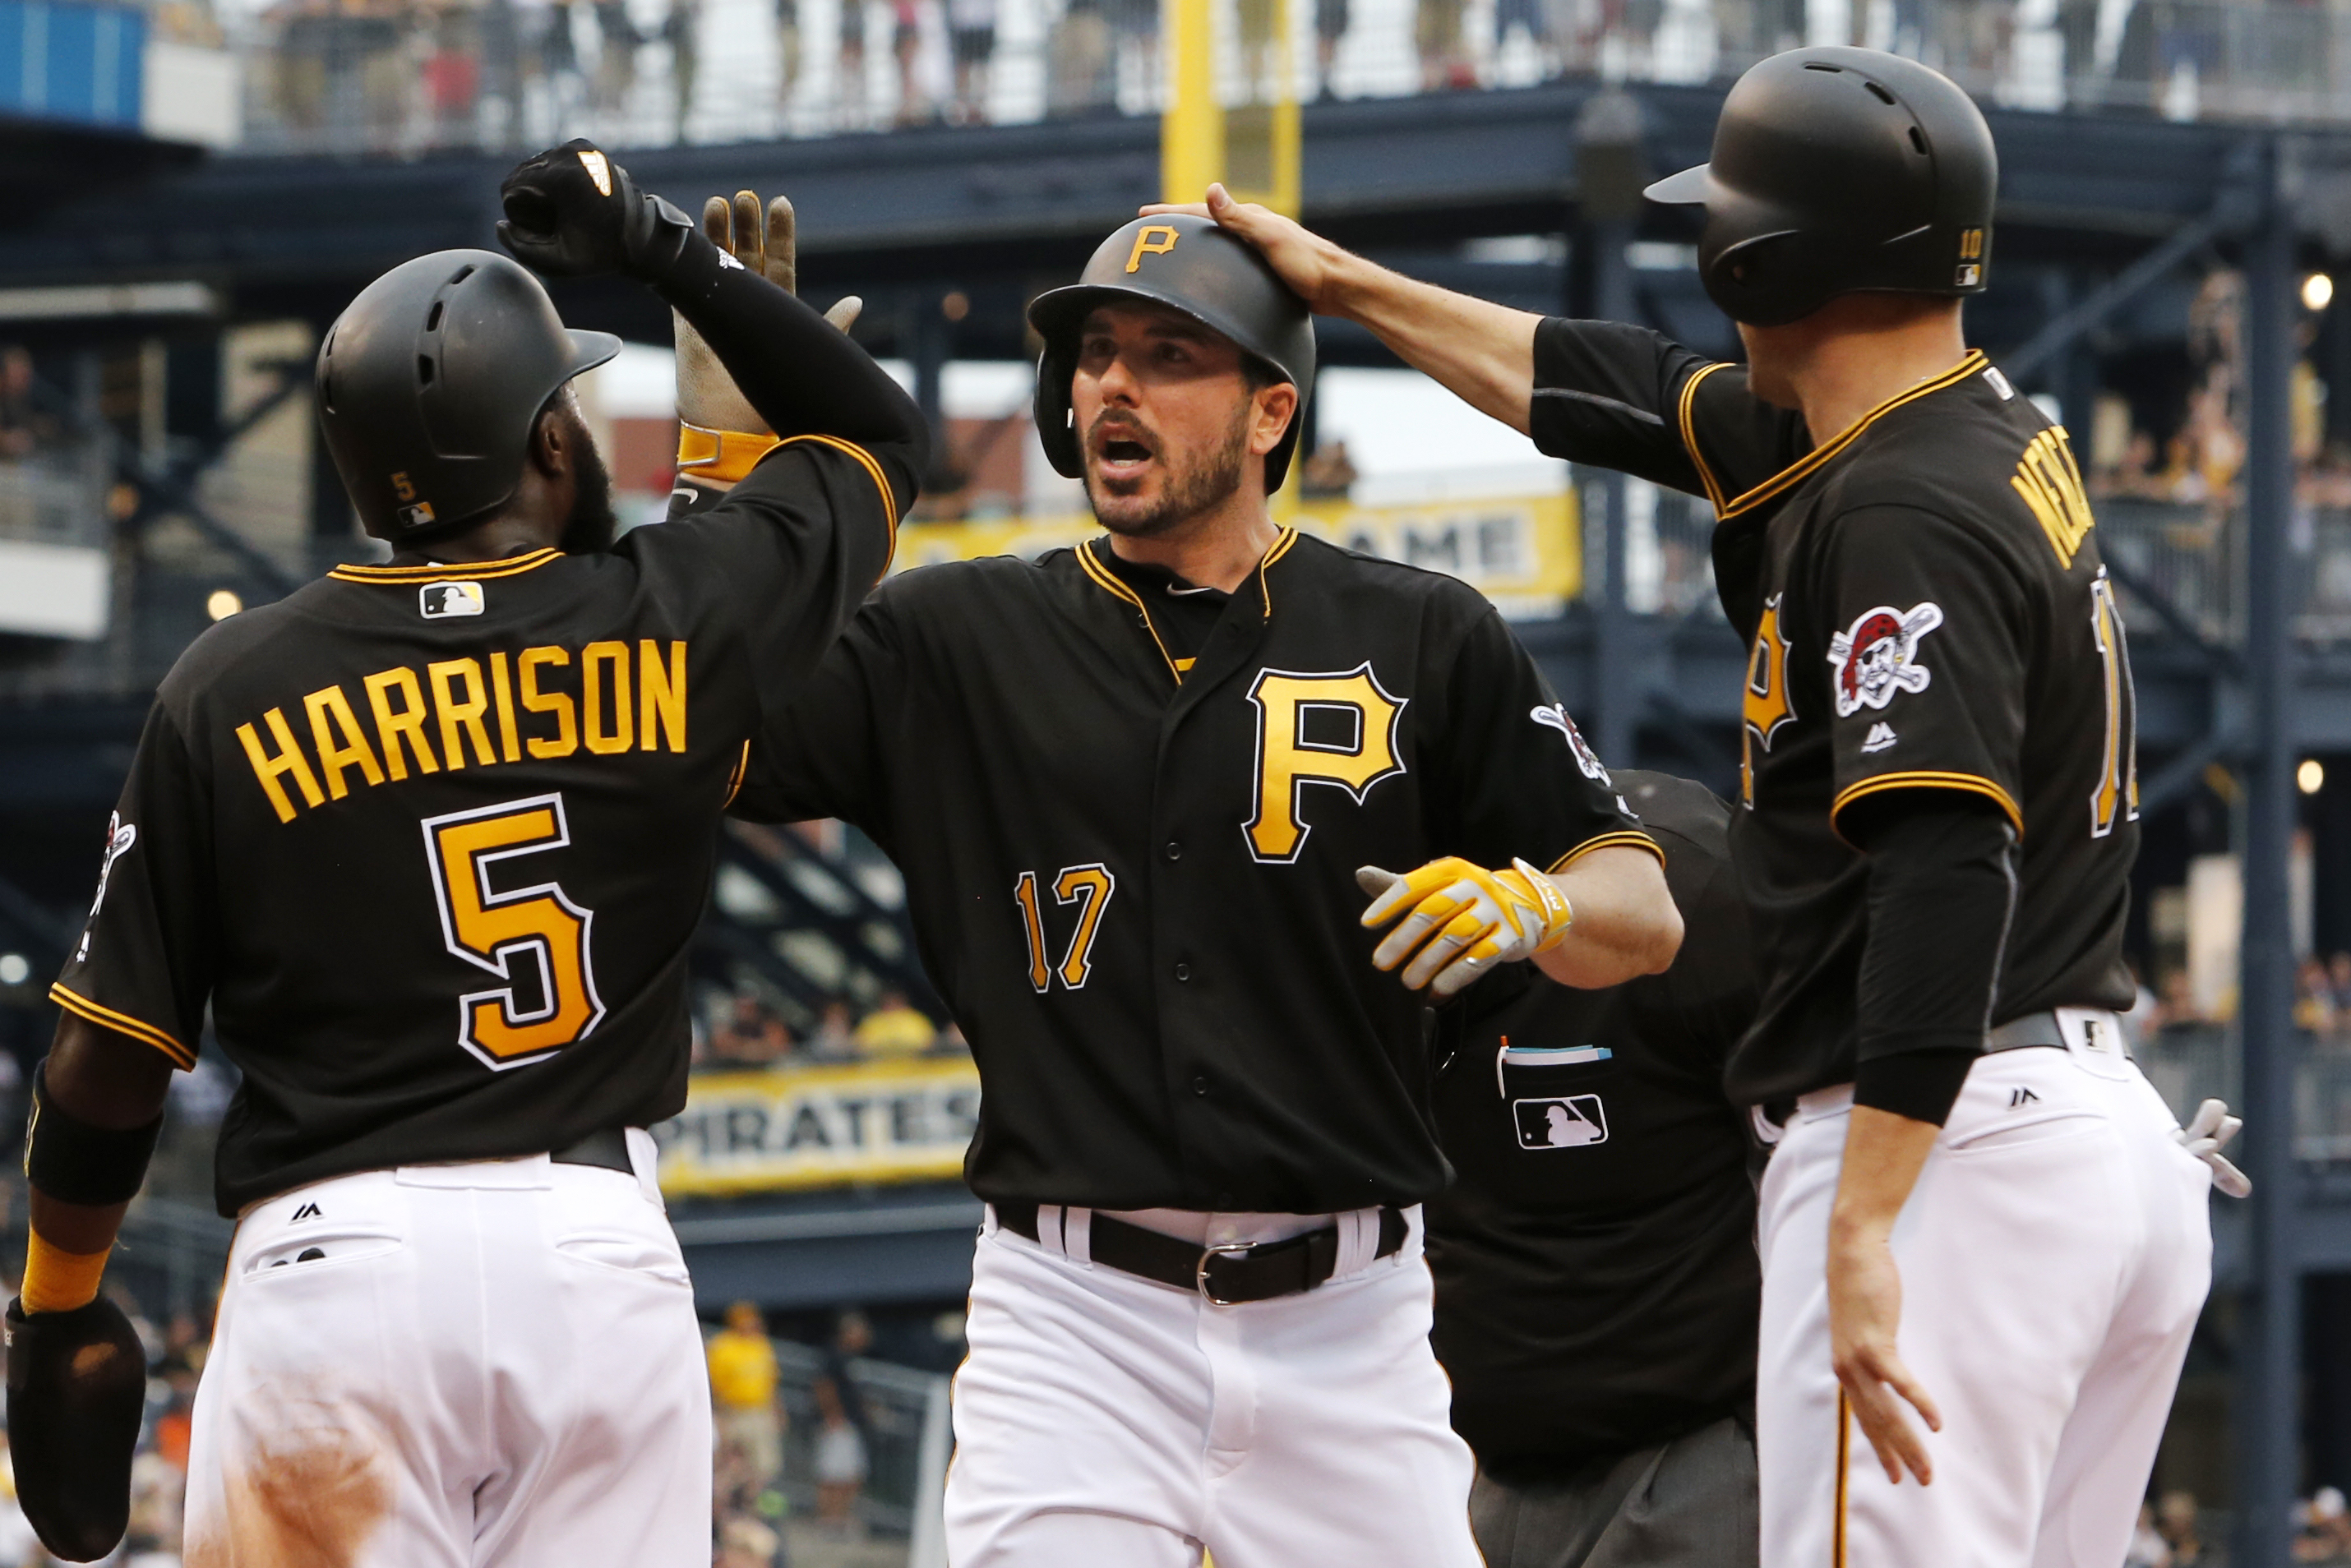 Pittsburgh Pirates' Matt Joyce (17) is greeted by teammates Josh Harrison (5) and Jordy Mercer who were on base for his three-run home run during the seventh inning of a baseball game Los Angeles Angles in Pittsburgh, Saturday, June 4, 2016. (AP Photo/Gen